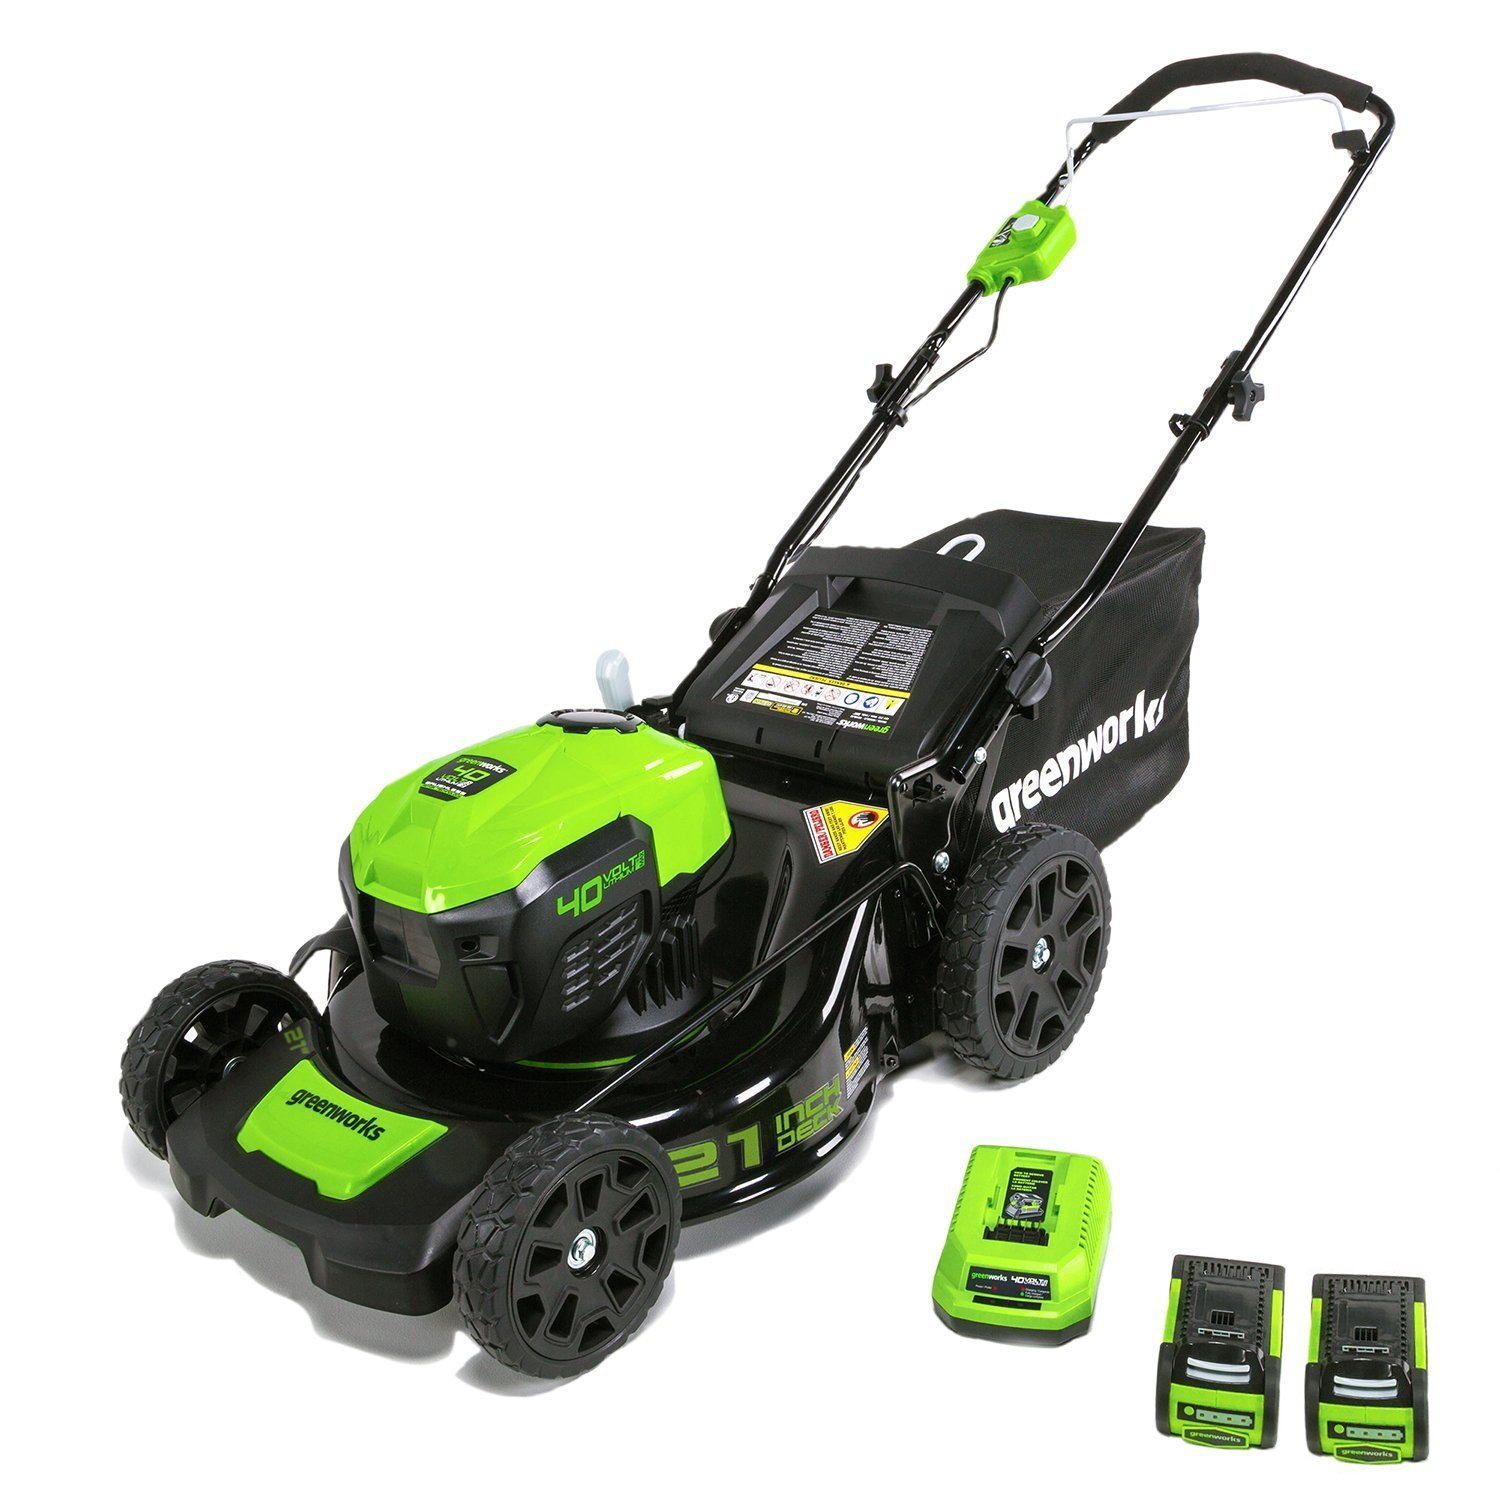 GreenWorks 21-Inch 40V Cordless Brushless Lawn Mower, Two 2.5 AH Batteries Included MO40L2512